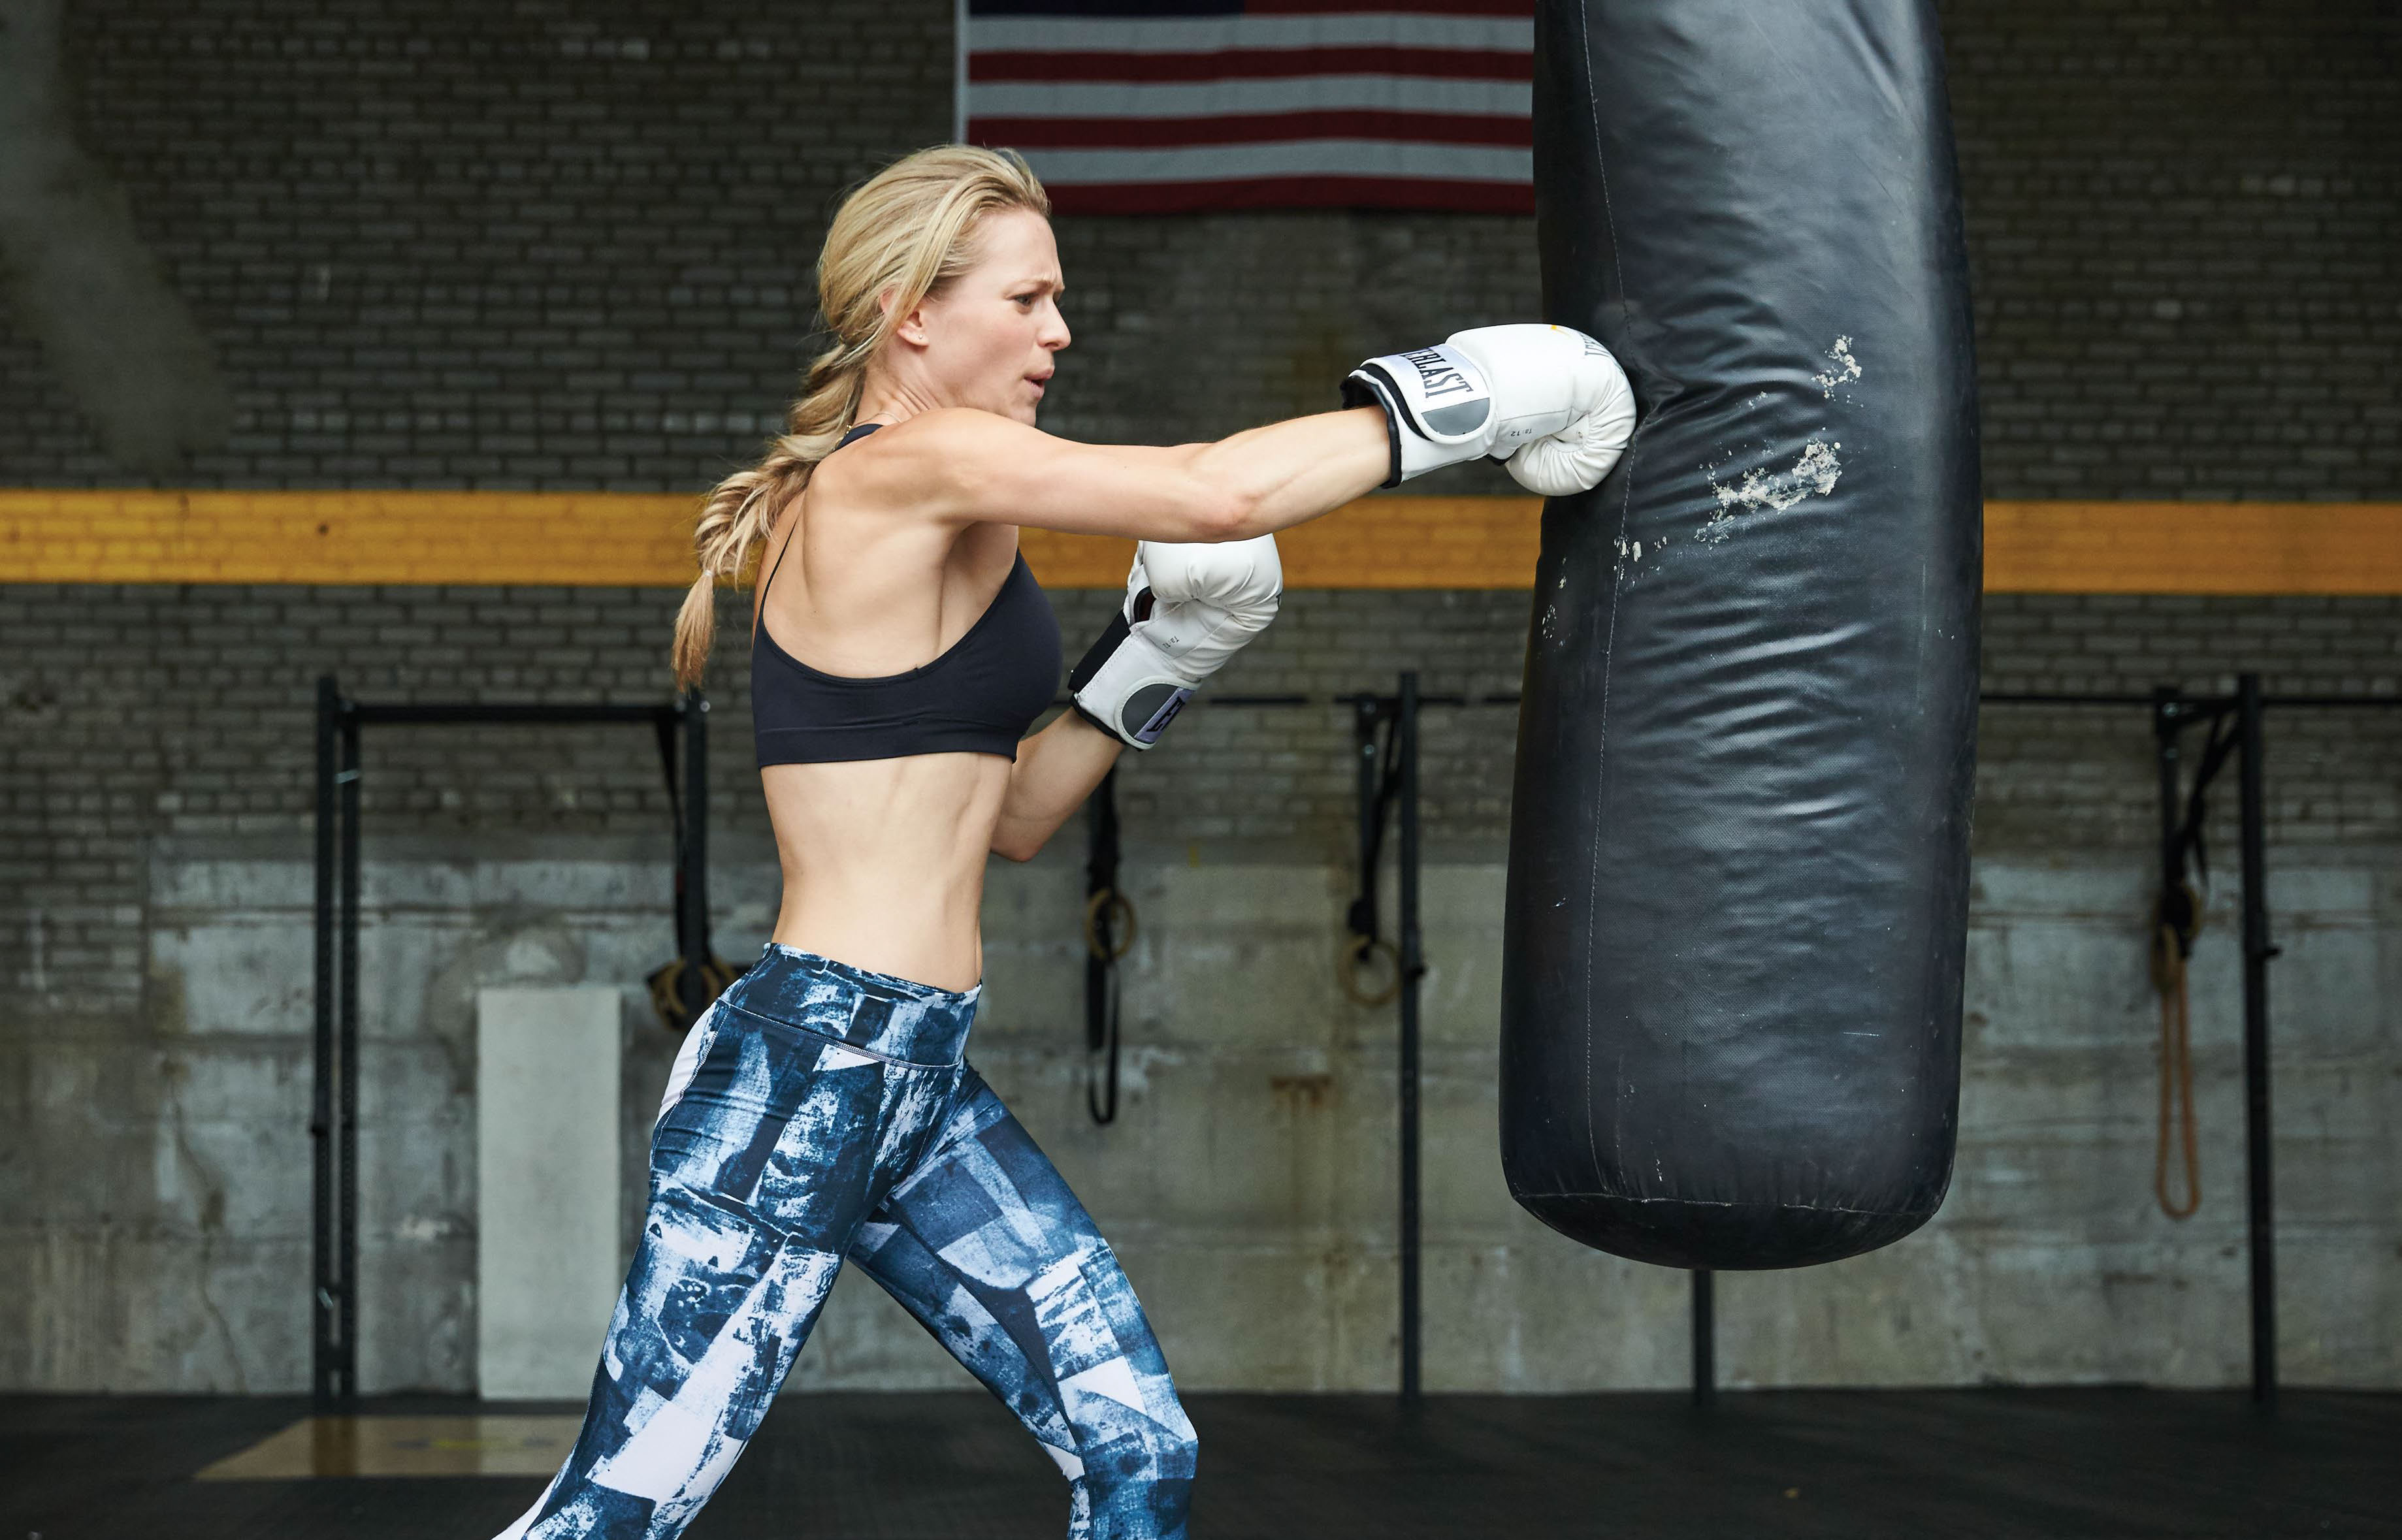 Thai Boxing Should Be A Part Of Your Fitness Goals